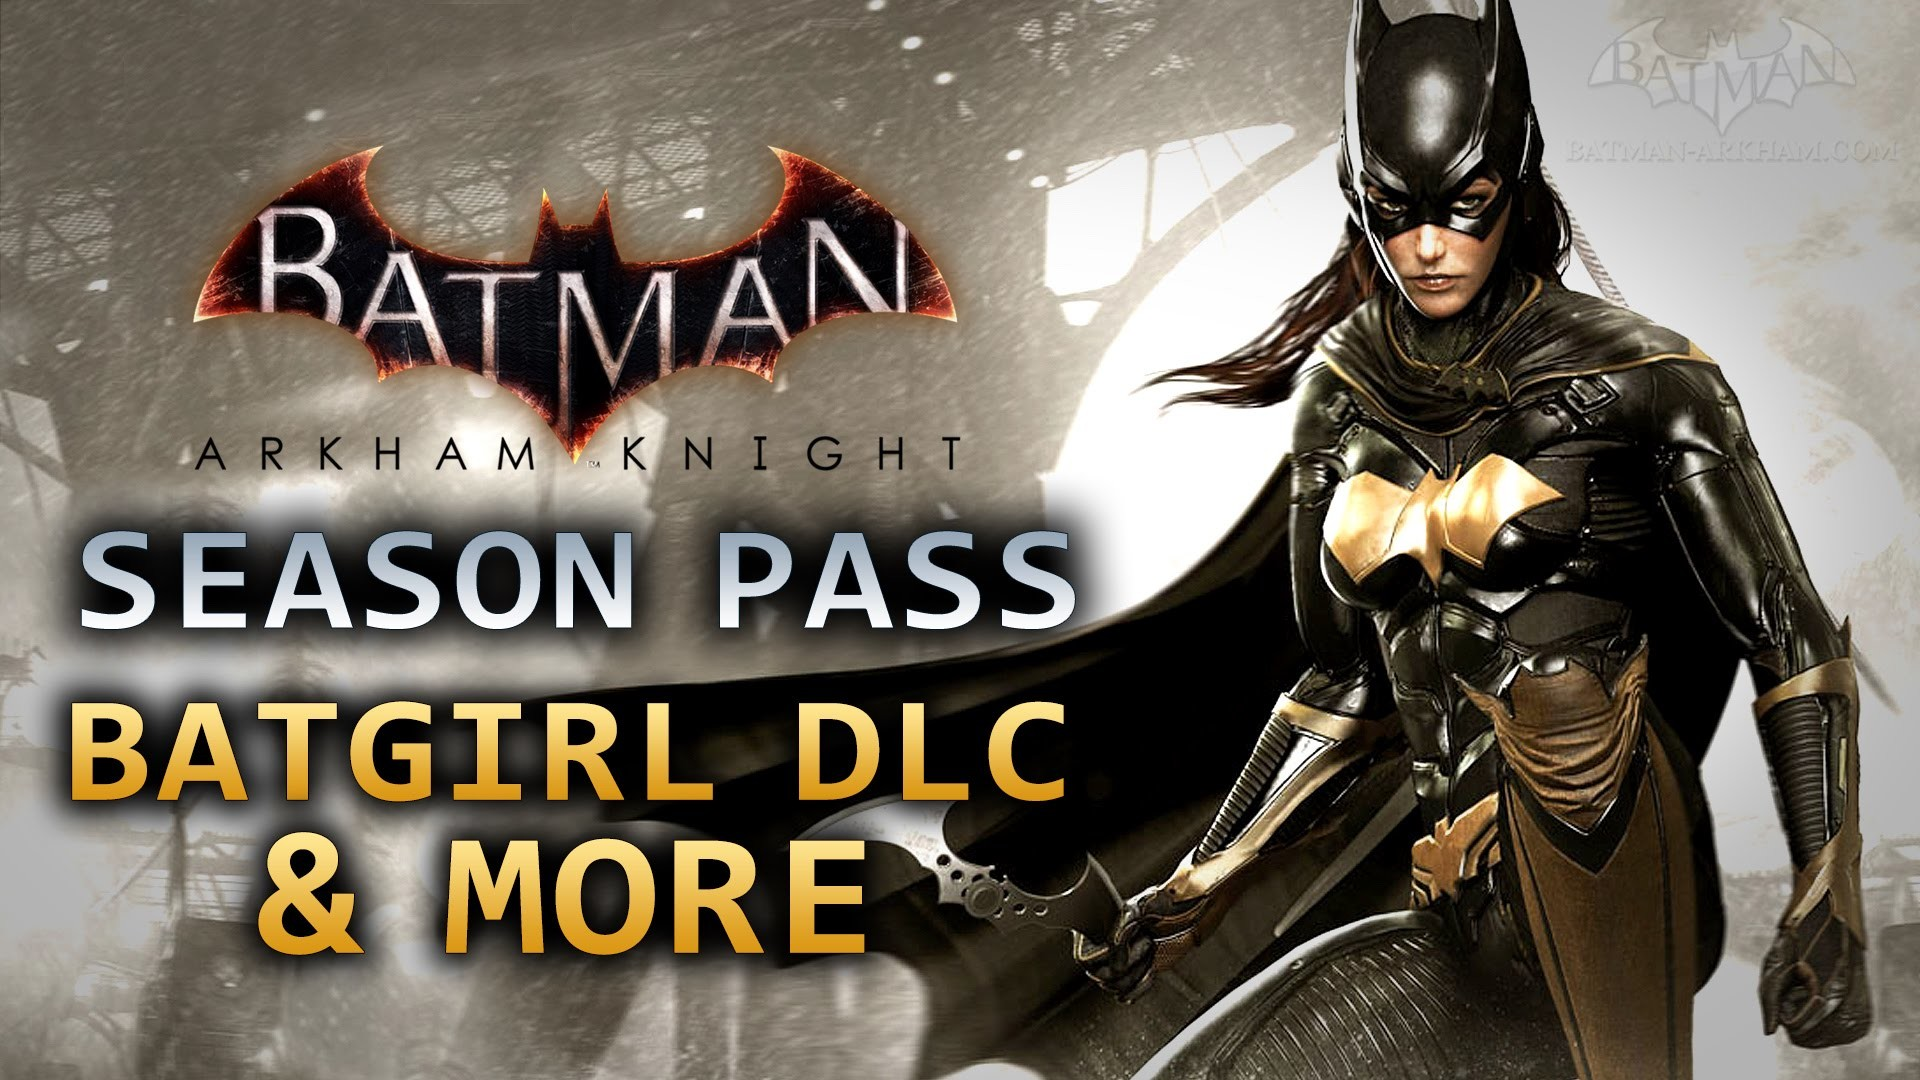 1920x1080 Batman: Arkham Knight - Batgirl DLC & More (Season Pass Details) - YouTube